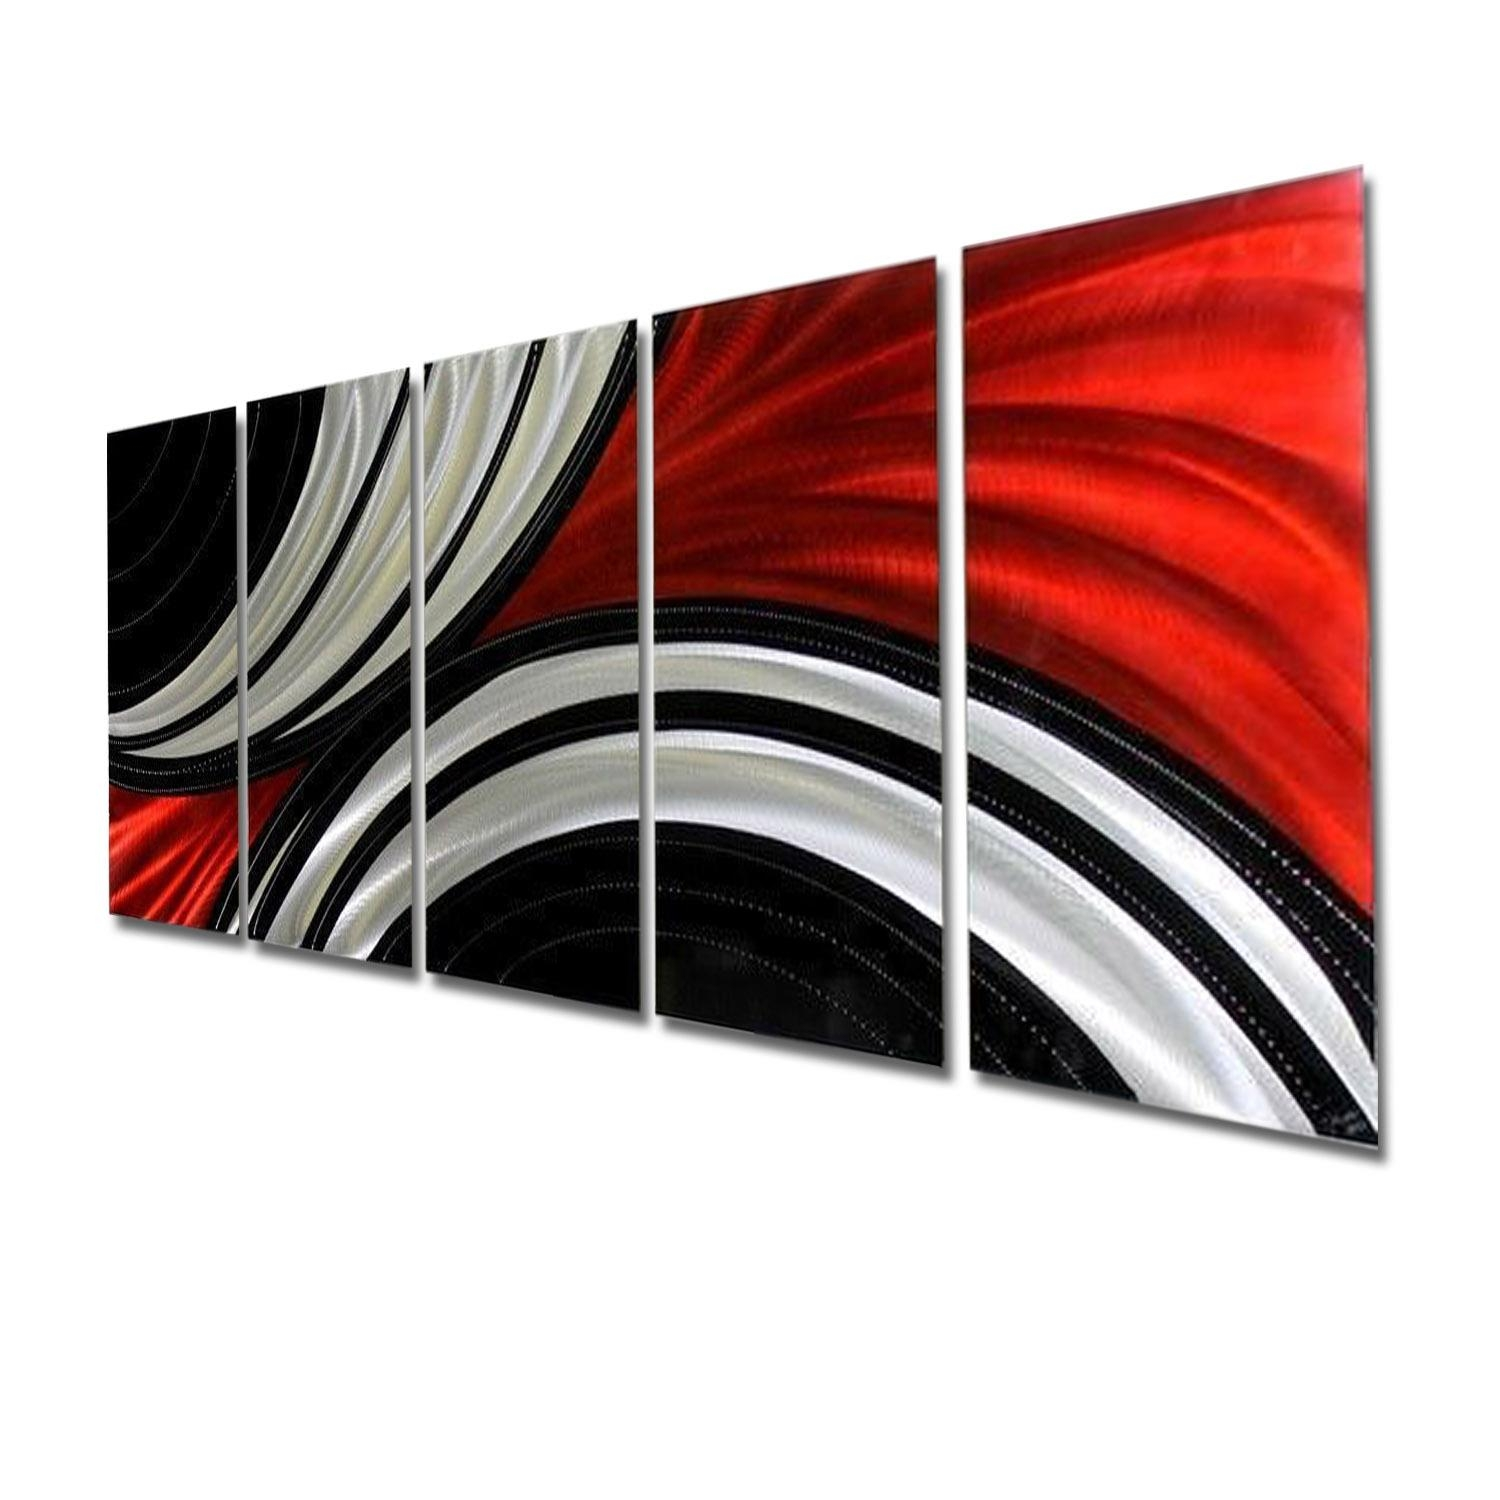 Feverish Perception Xl – Red, Black & Silver Abstract Metal Wall With Regard To Black Silver Wall Art (View 8 of 20)